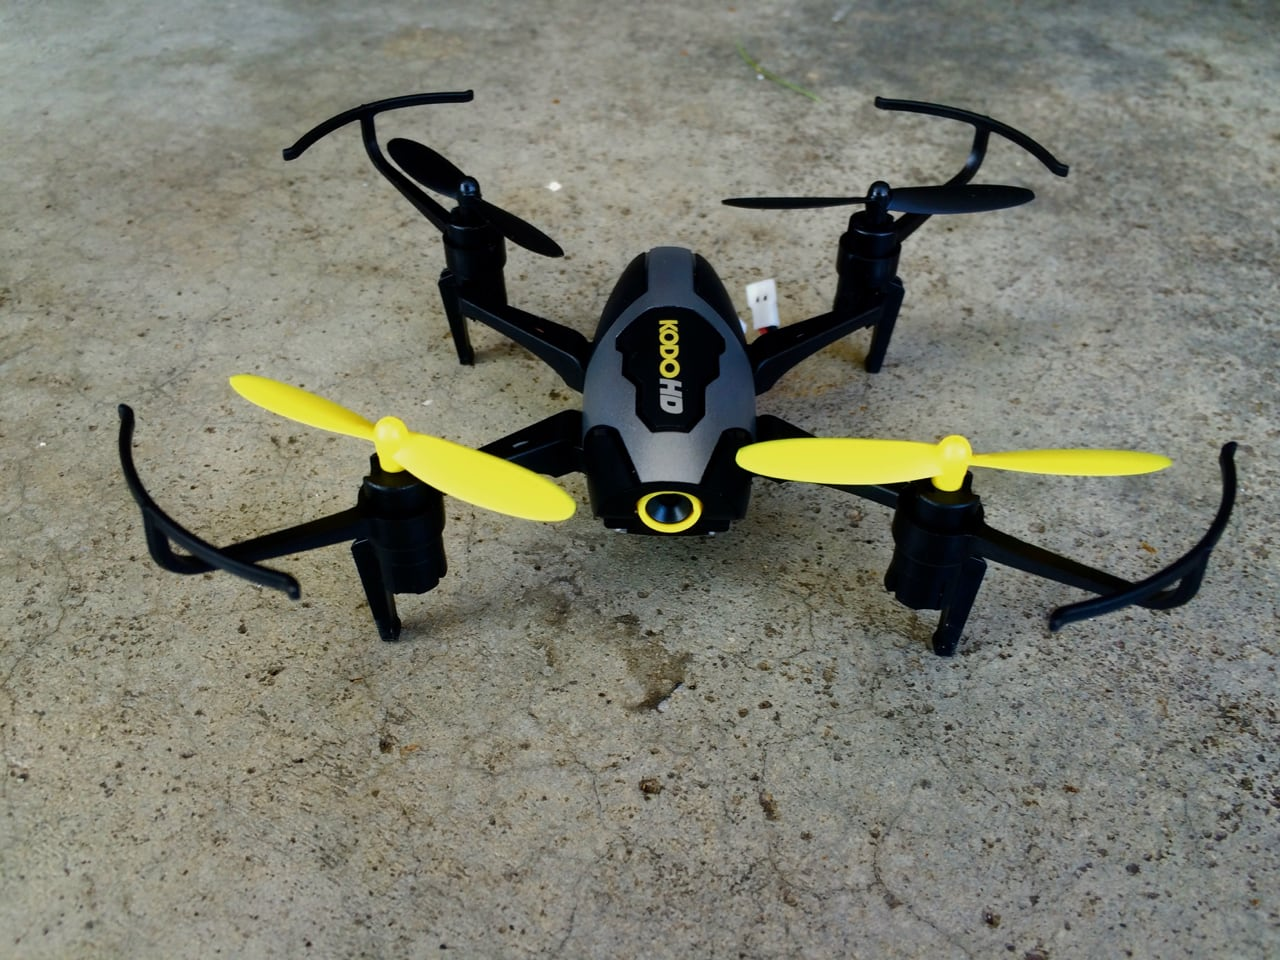 Dromida KODO HD Quadcopter: The Review